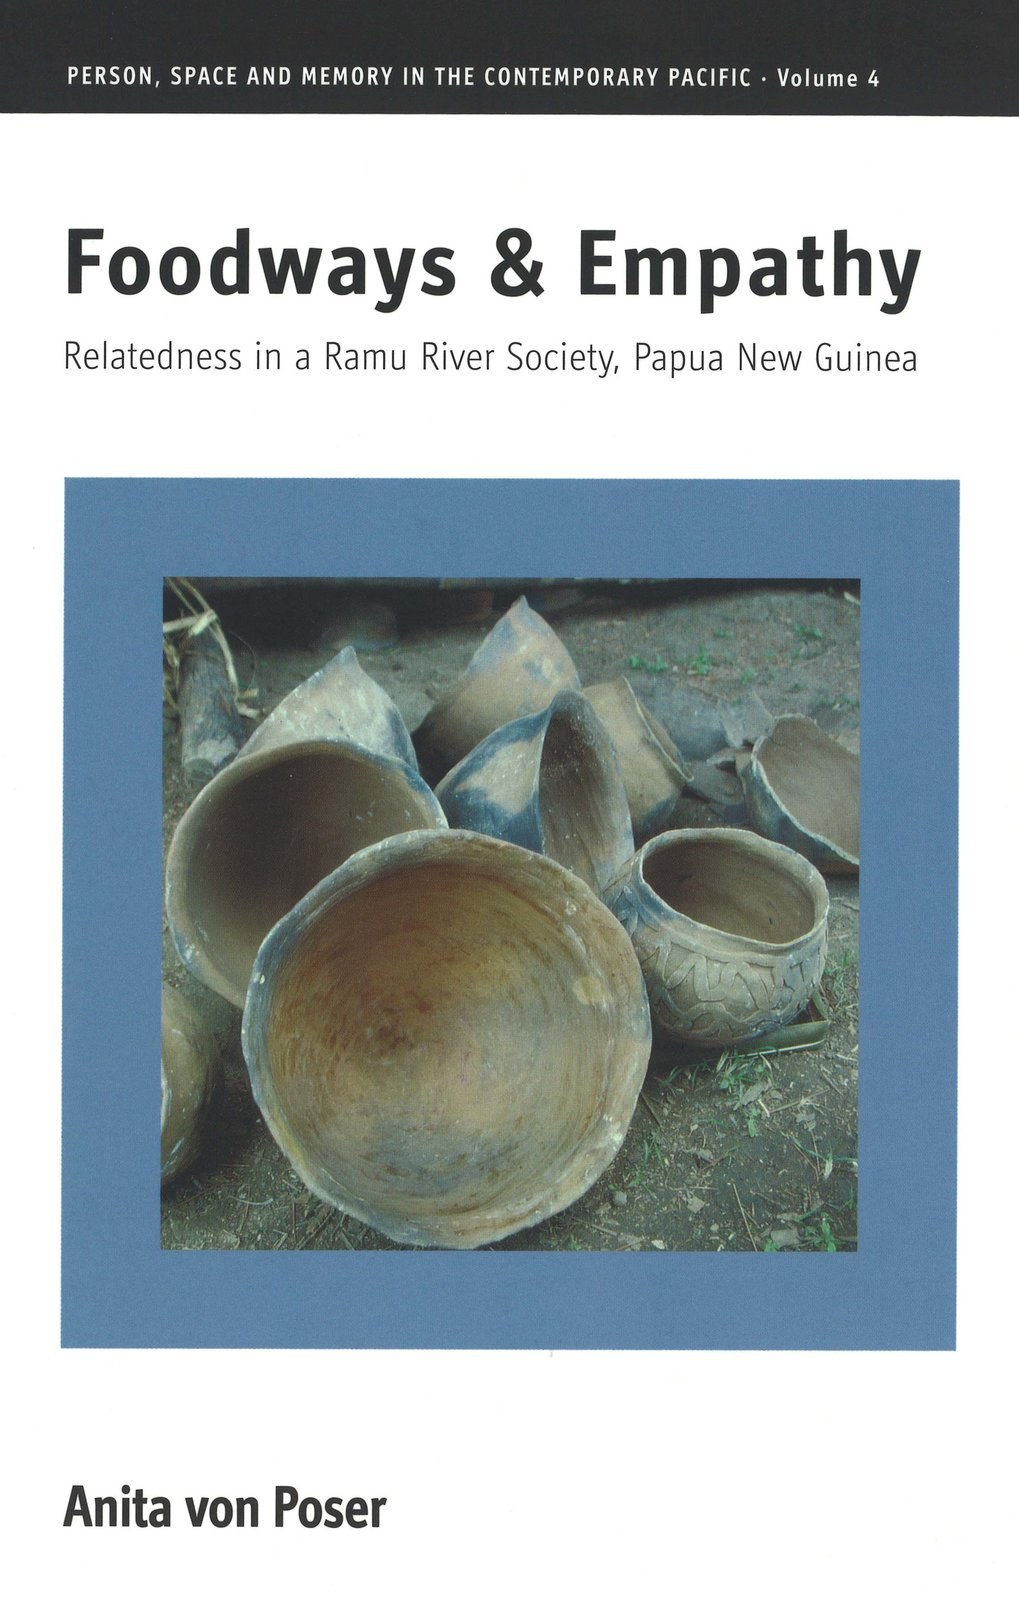 Foodways & Empathy. Relatedness in a Ramu River Society, Papua New Guinea